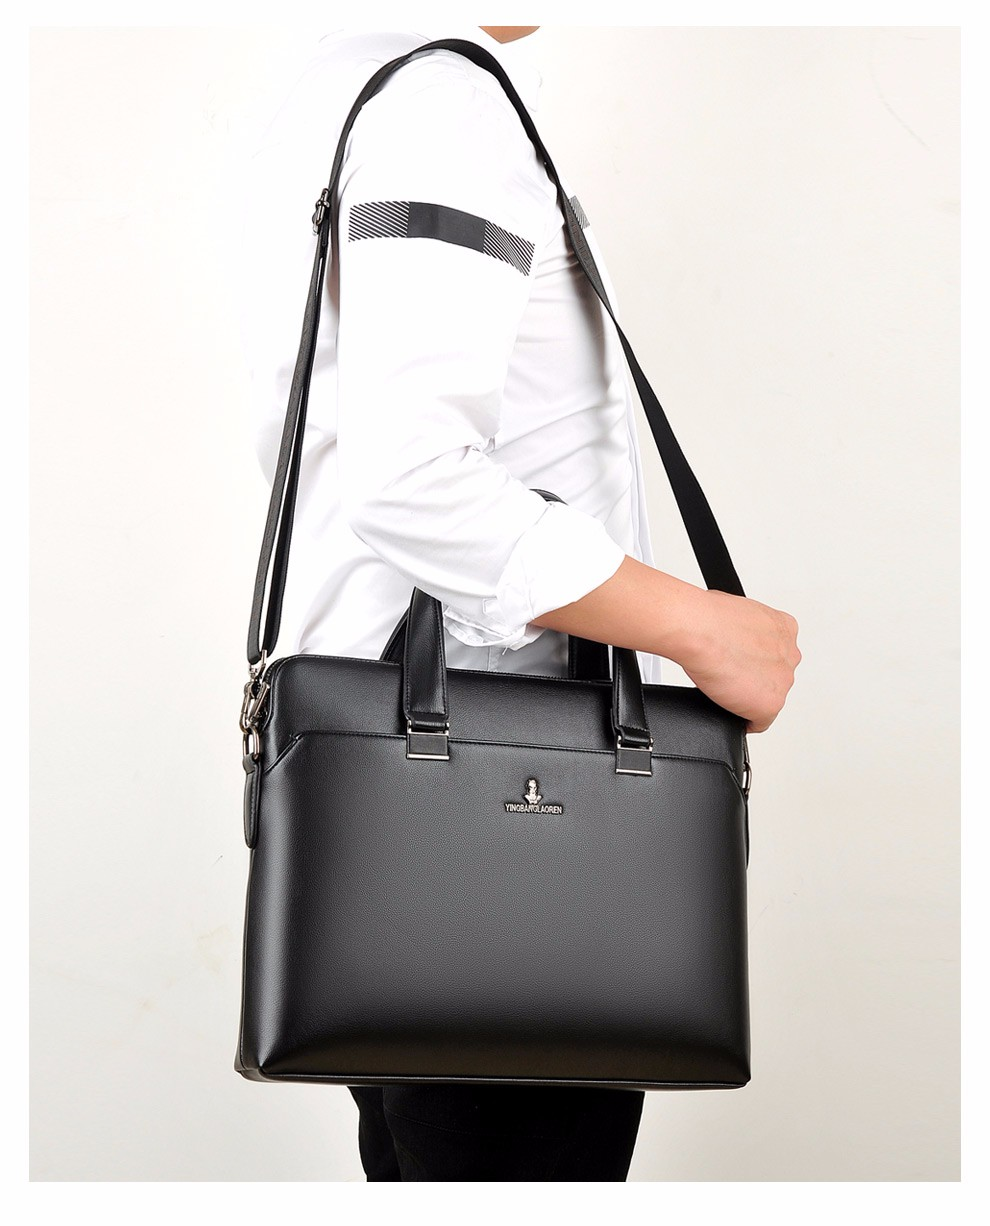 OEM office business PU leather handbag/briefcase/laptop bag for men , factory price directly